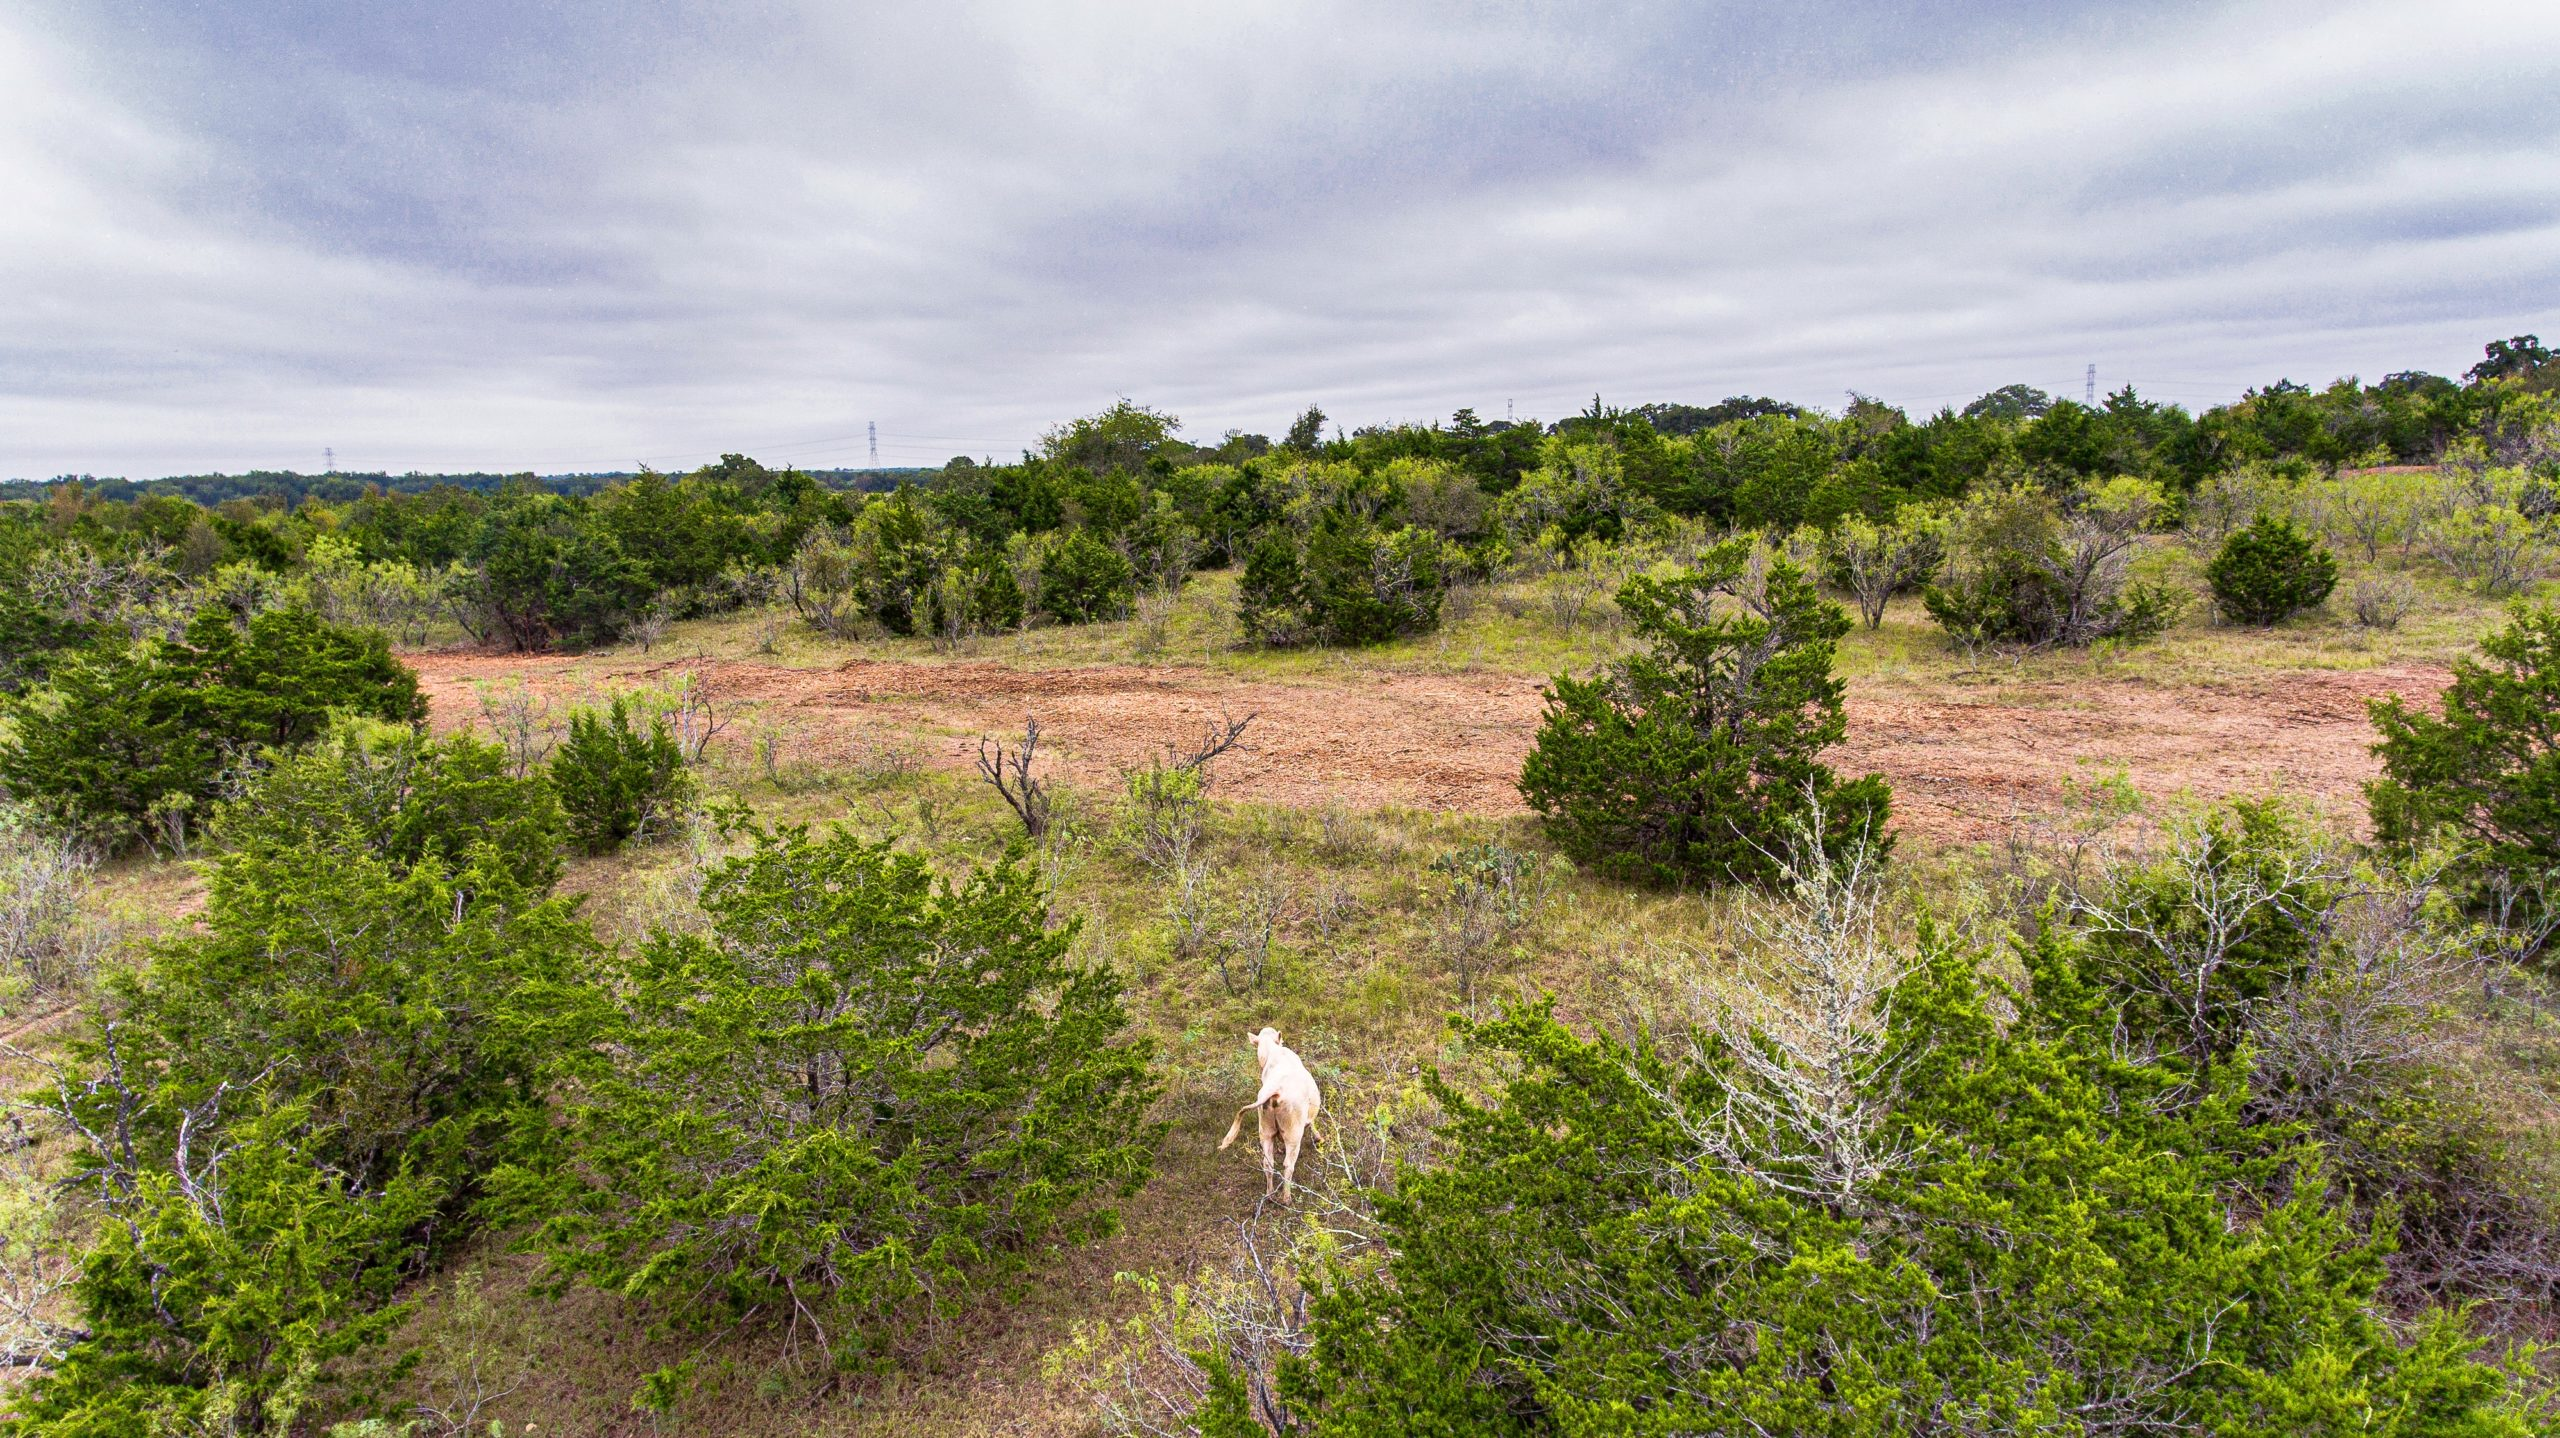 view of land with grazing cattle and scattered trees